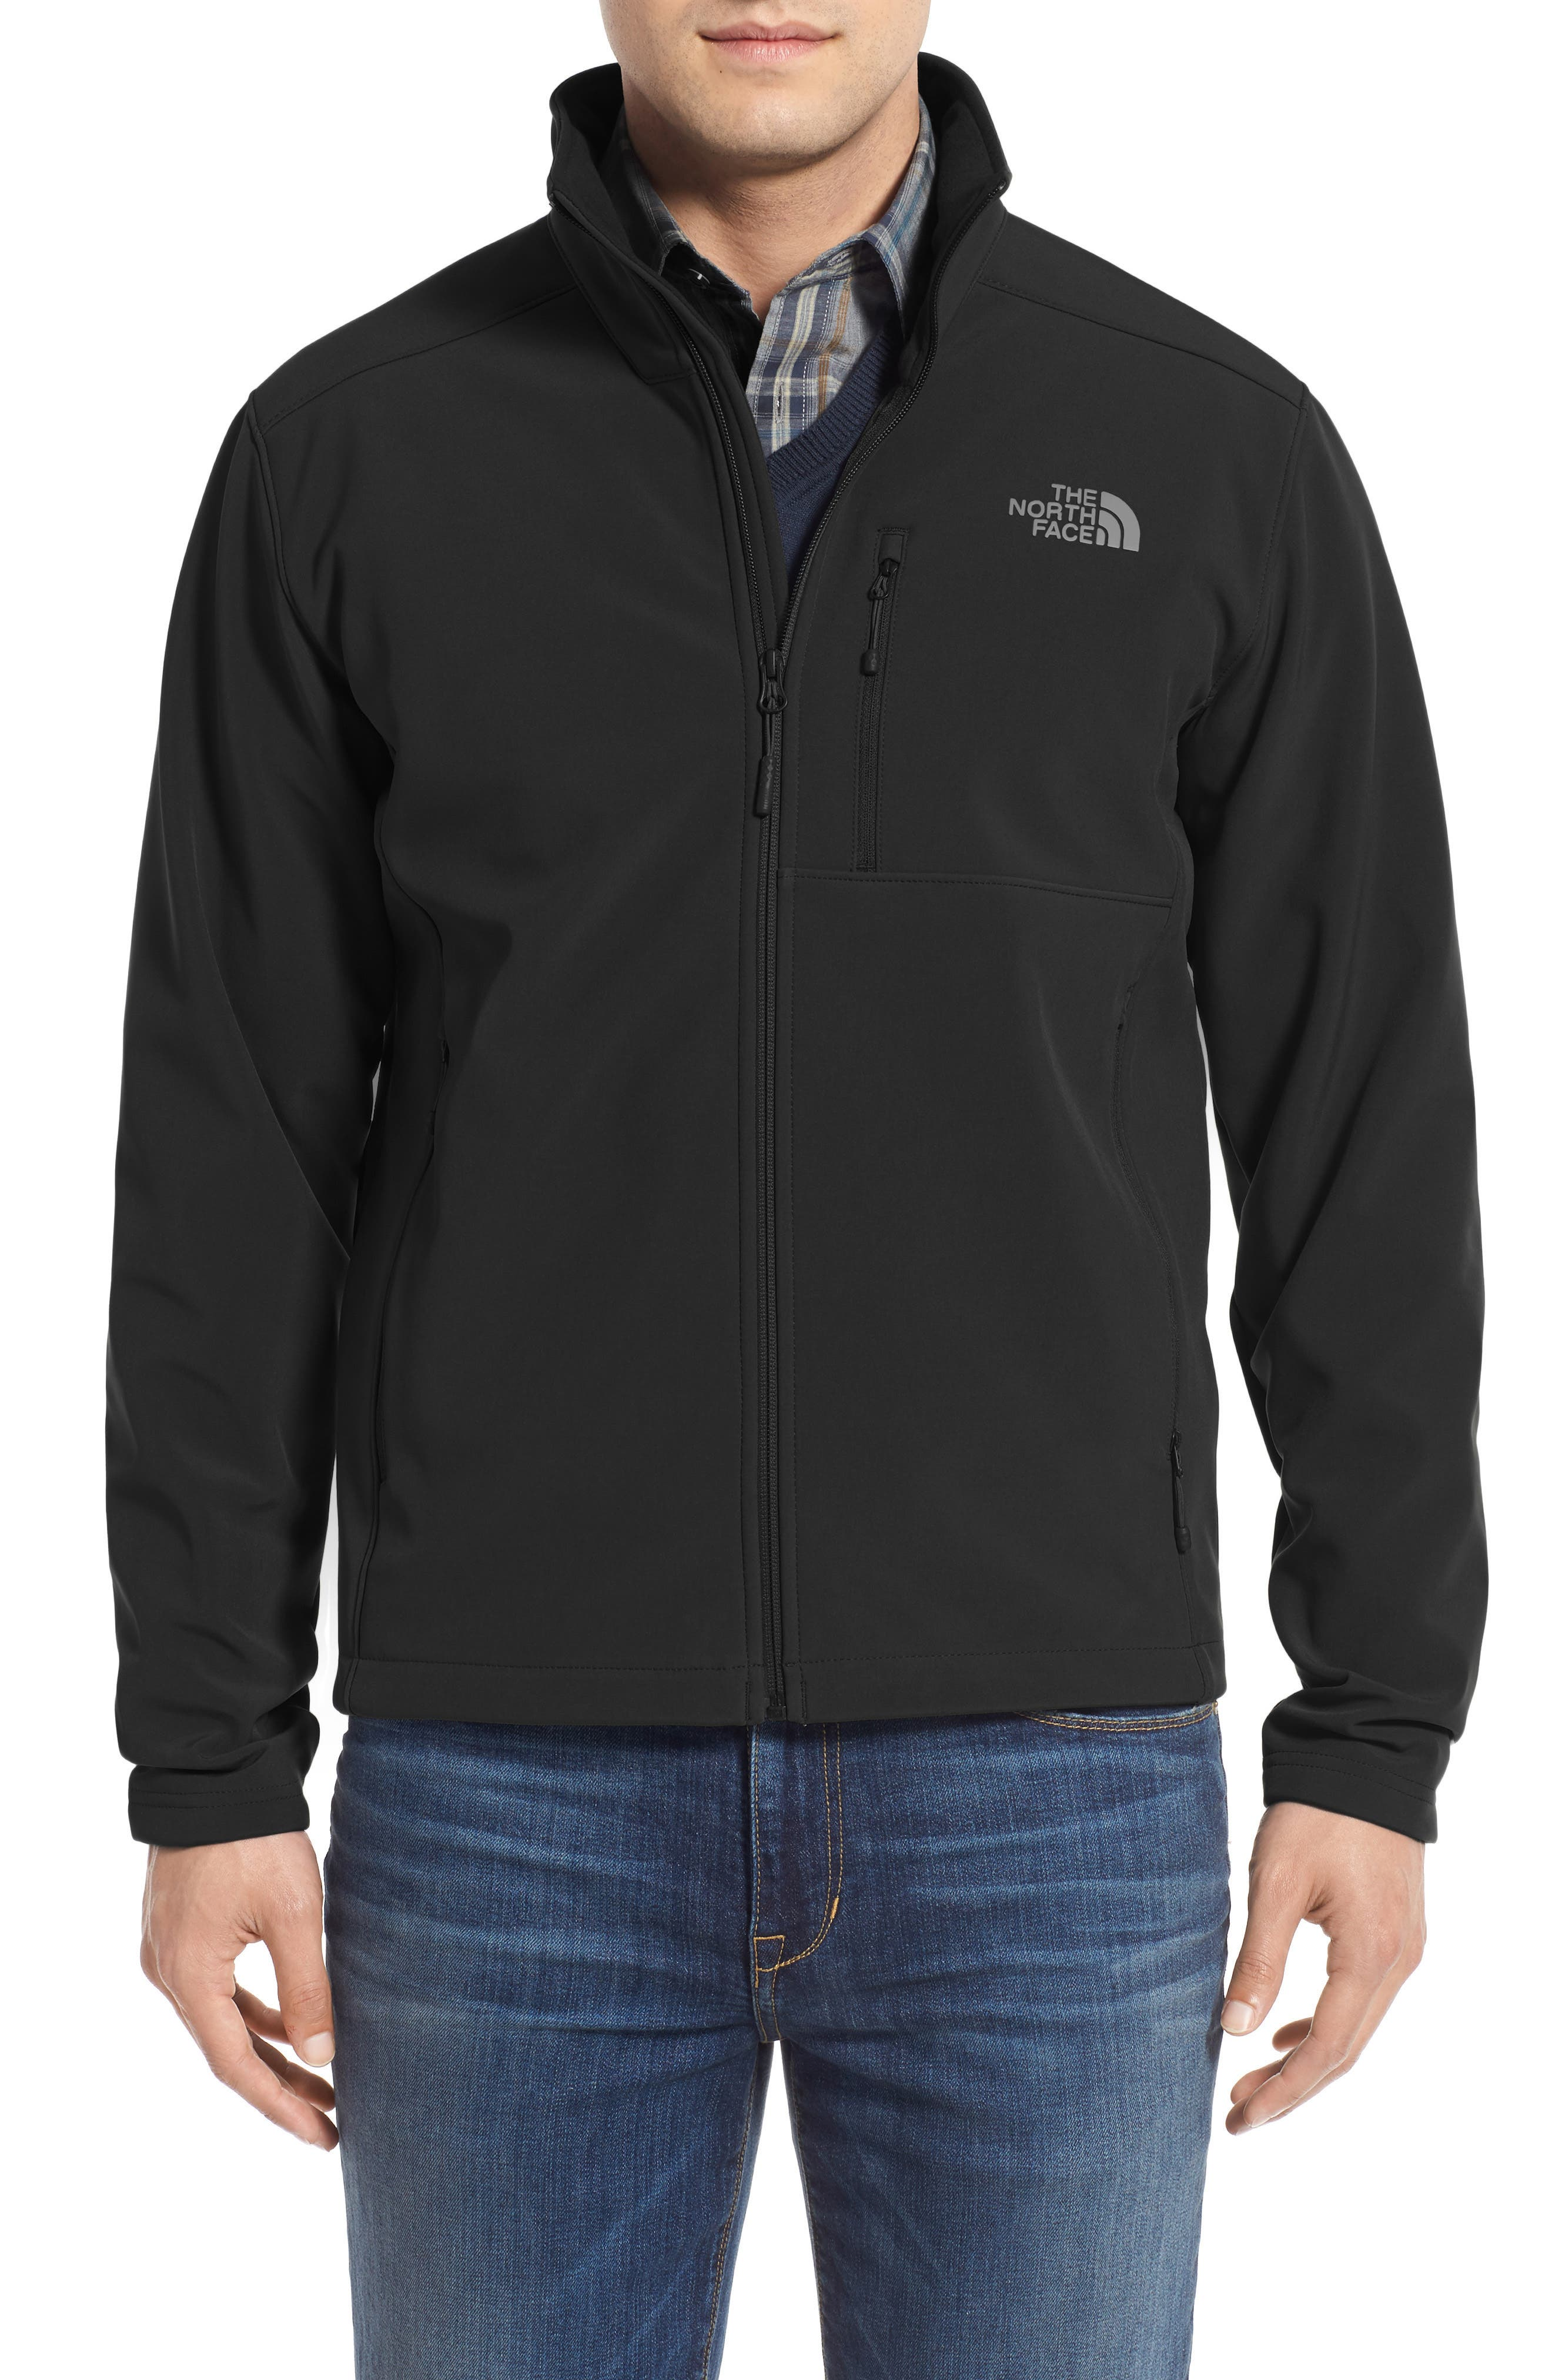 Alternate Image 1 Selected - The North Face Apex Bionic 2 Water Repllent Jacket (Tall)